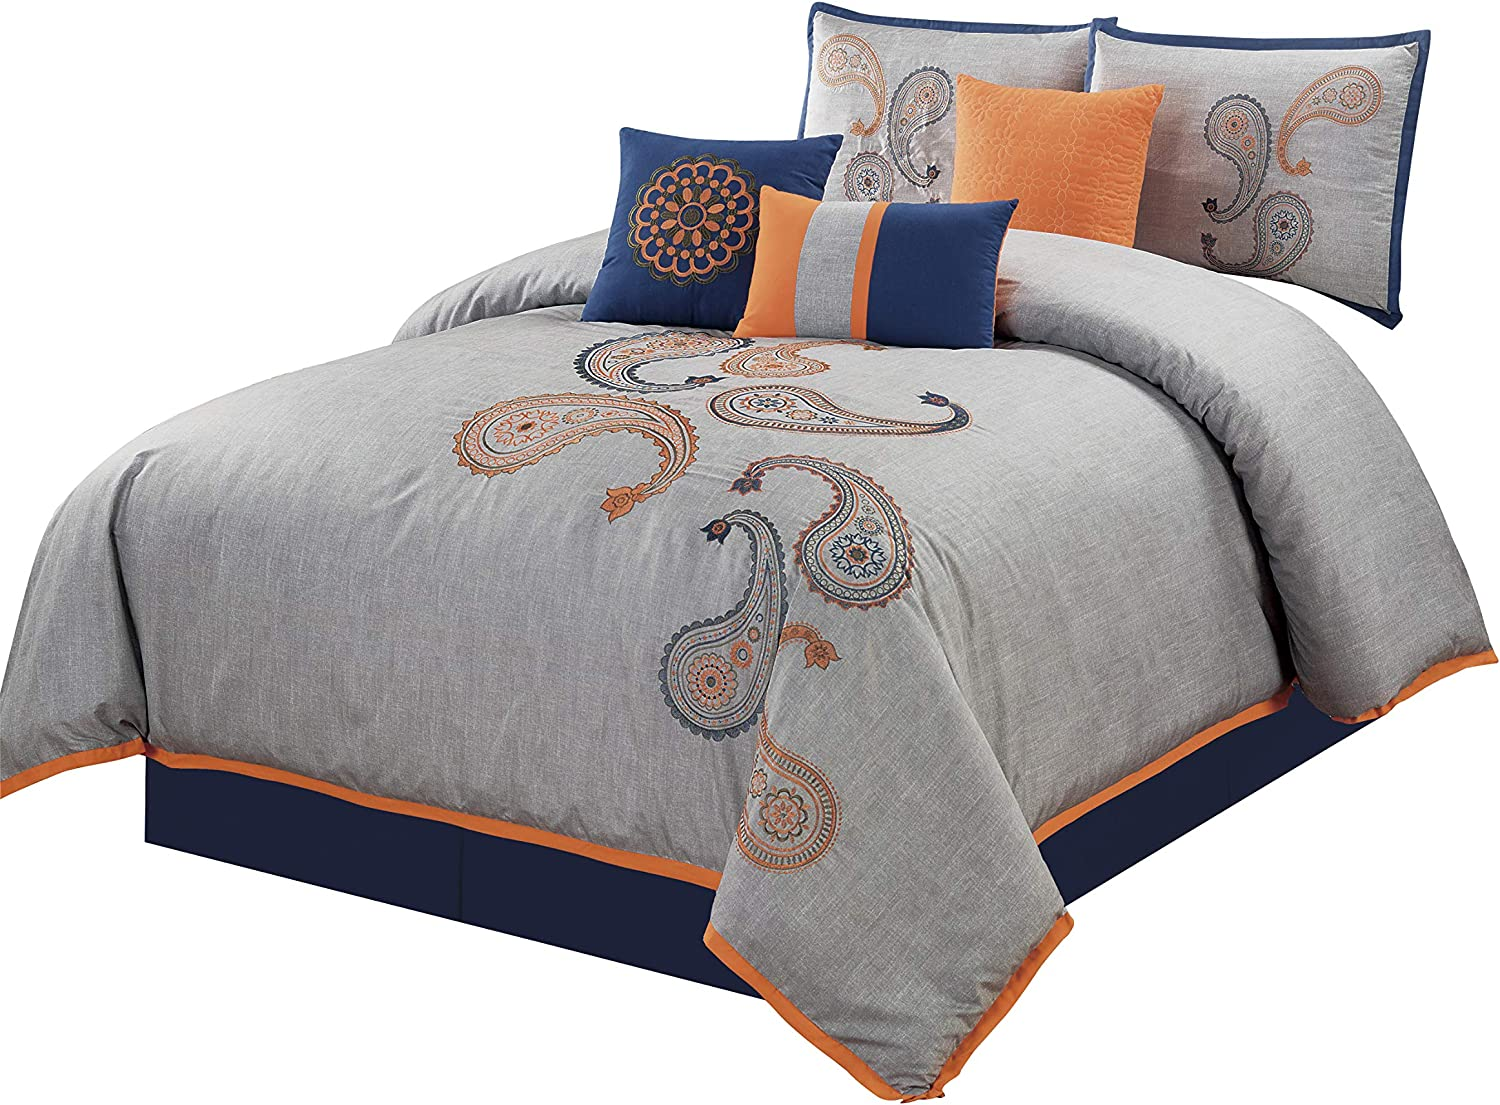 Chezmoi Collection Naomi 3-piece Paisley Floral Embroidered Duvet Cover Set